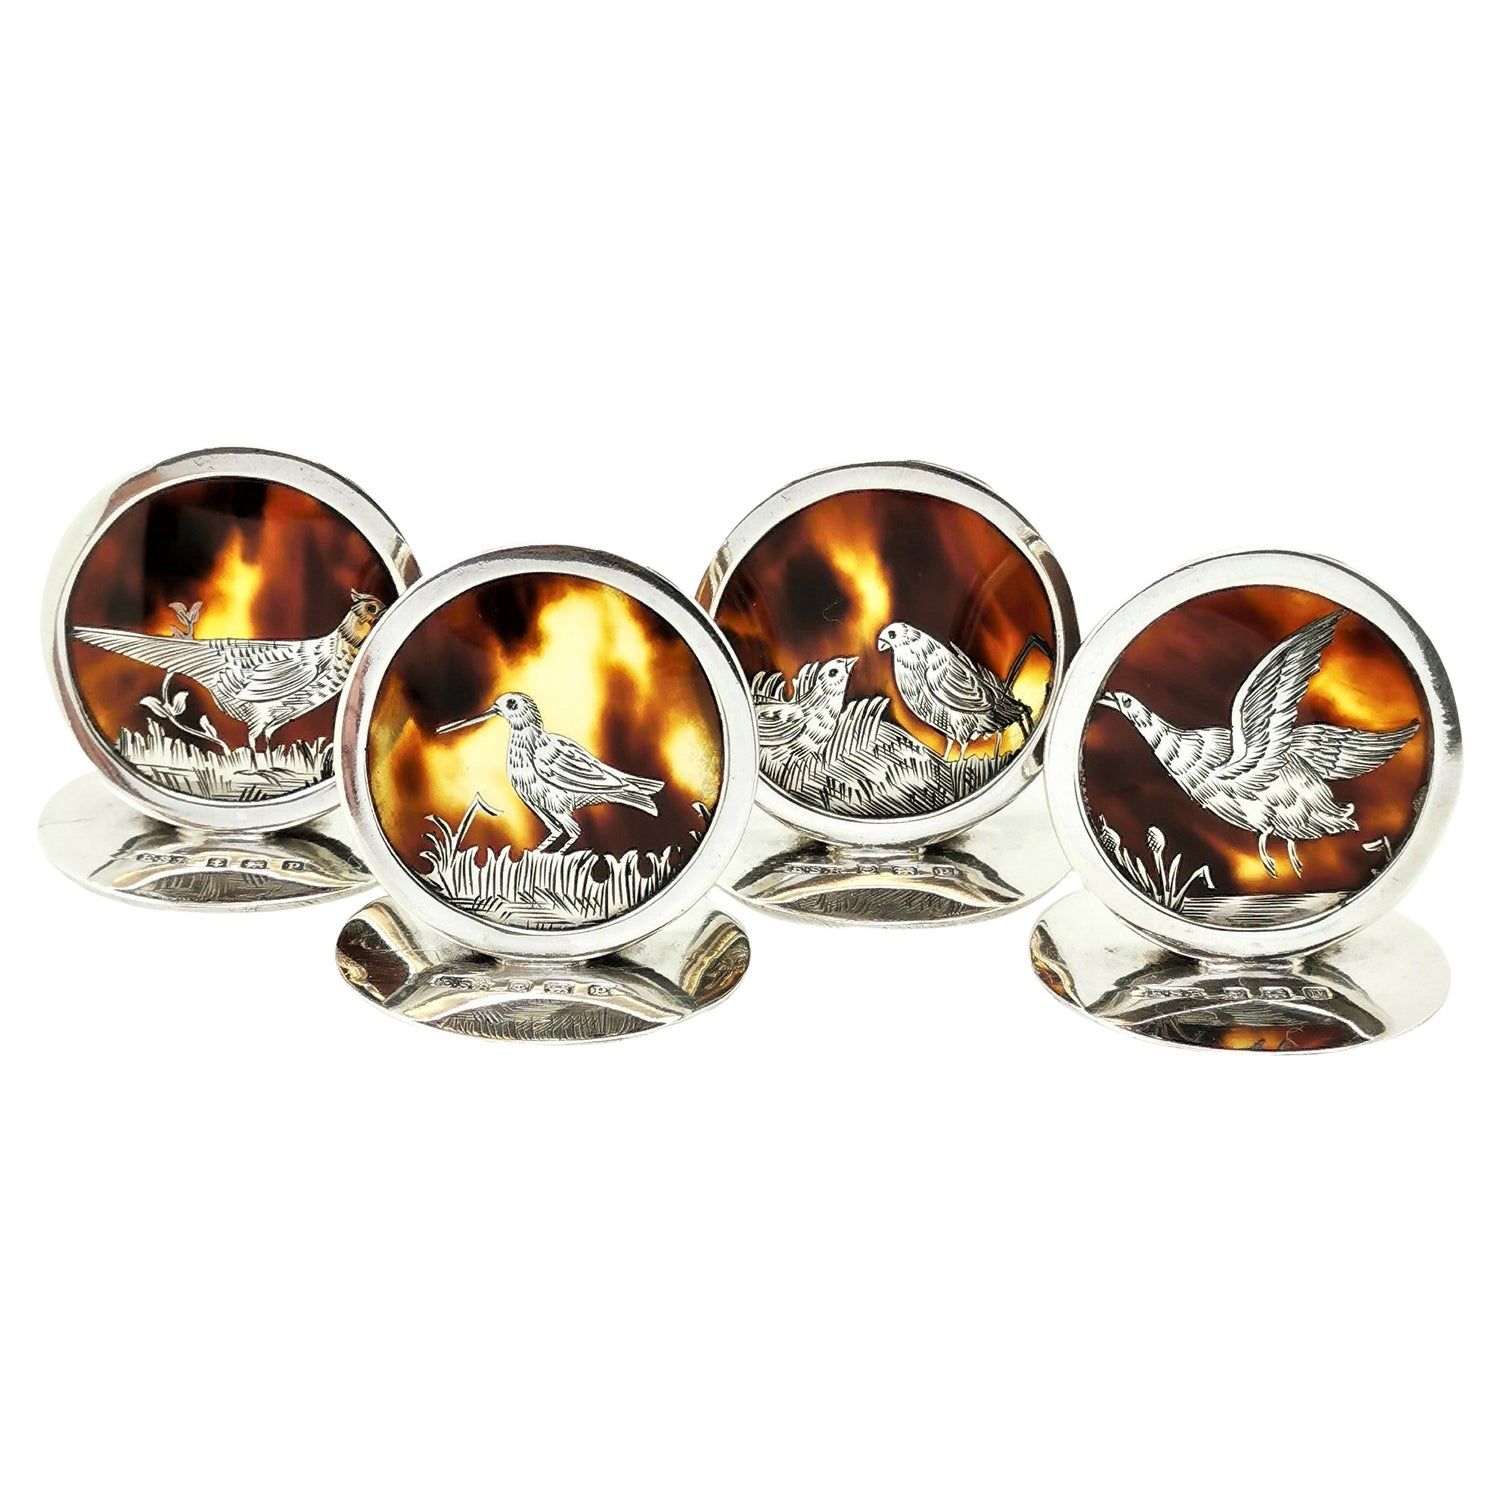 Set Four Antique Silver & Tortoise Shell Place Card Menu Holders Game Bird, 1914